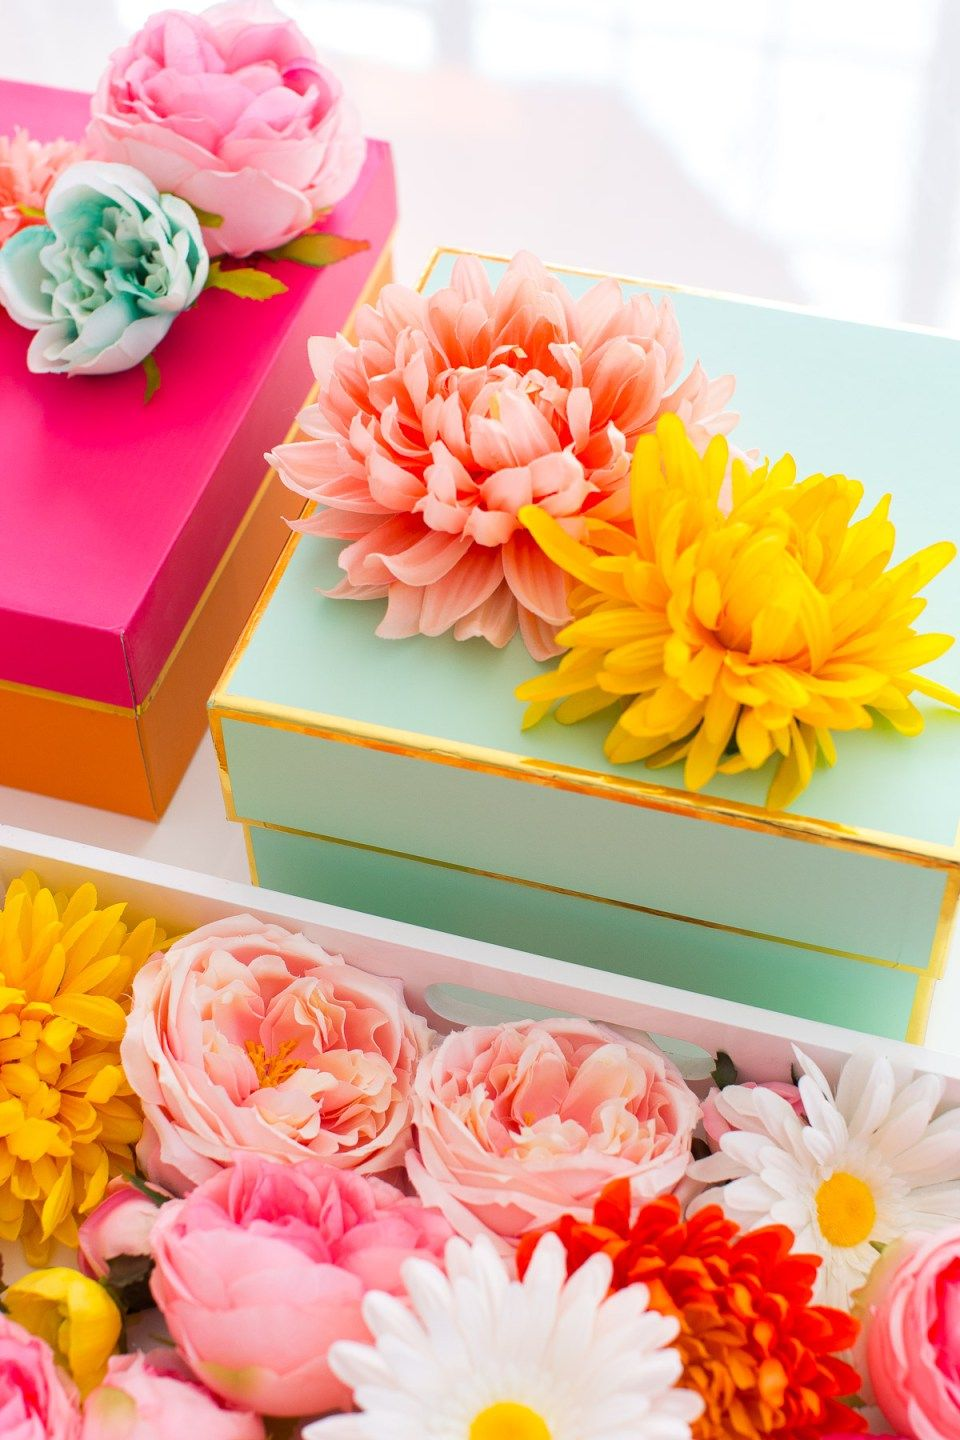 DIY Faux Flower Gift Topper Stickers Diy mothers day